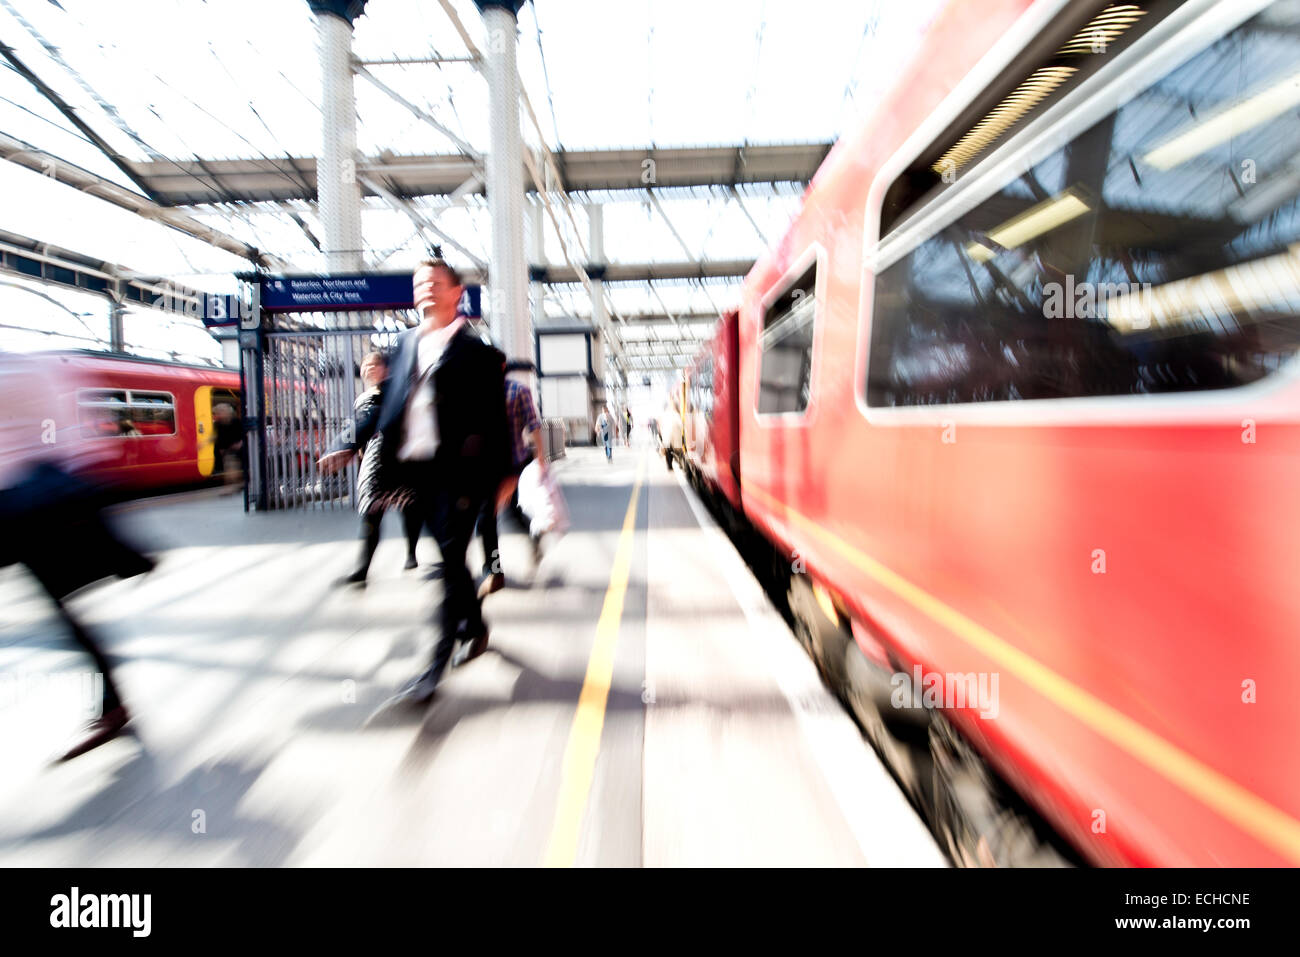 Commuters leaving train at Waterloo Station in rush hour - Stock Image